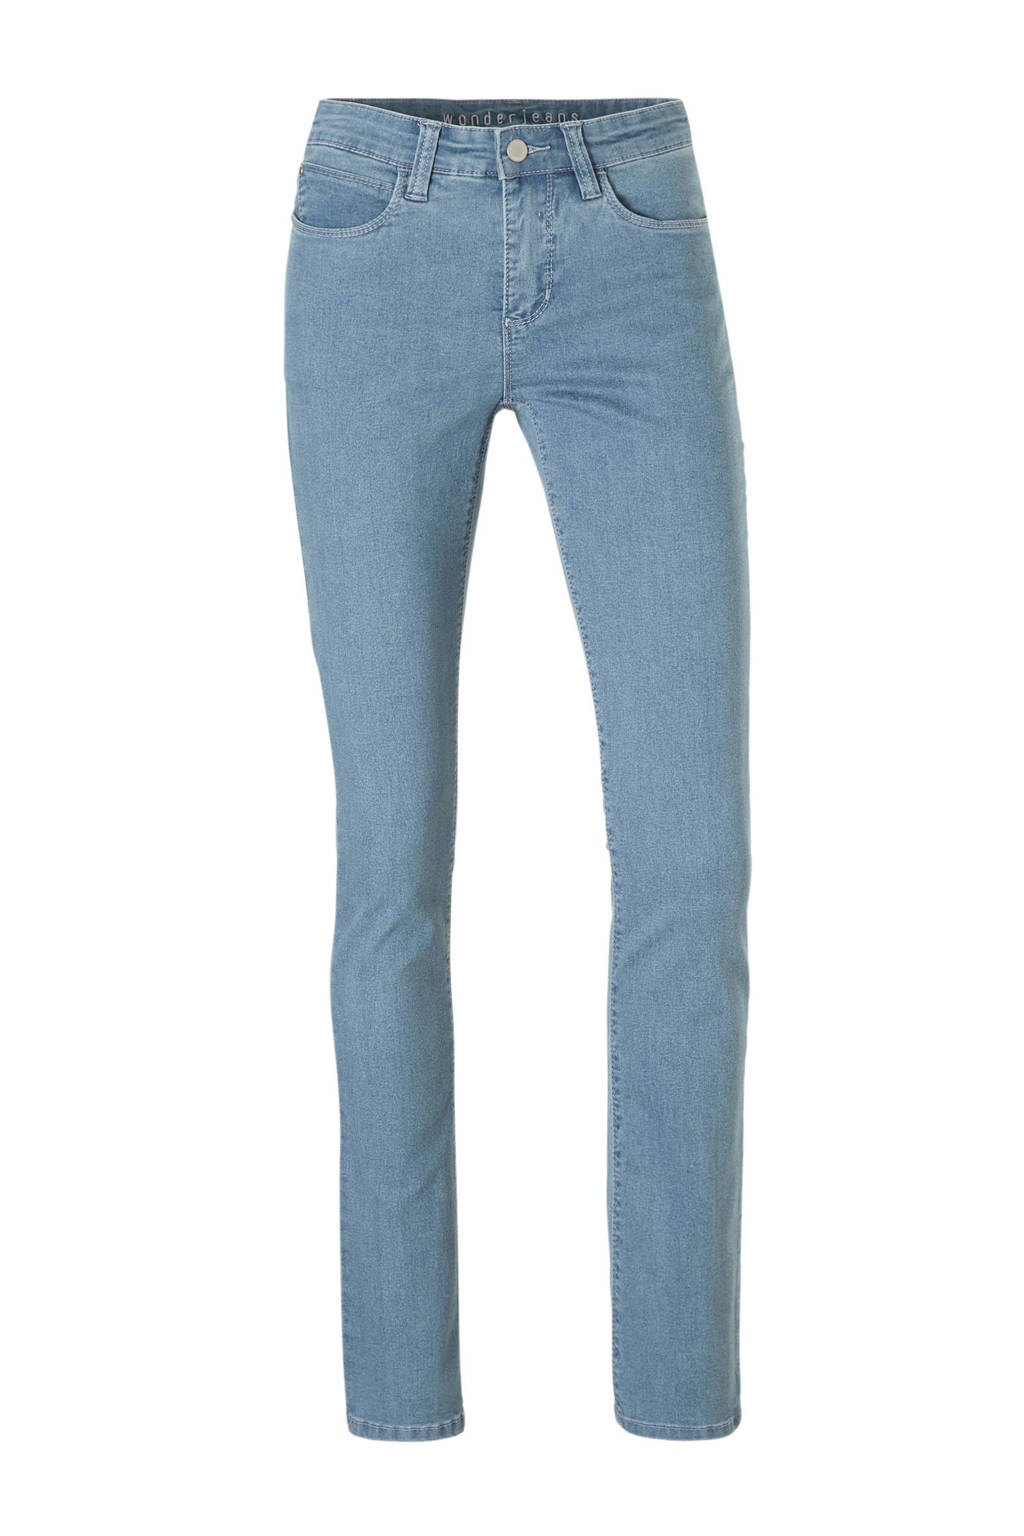 Brooker wonderjeans, Stonewashed licht blauw